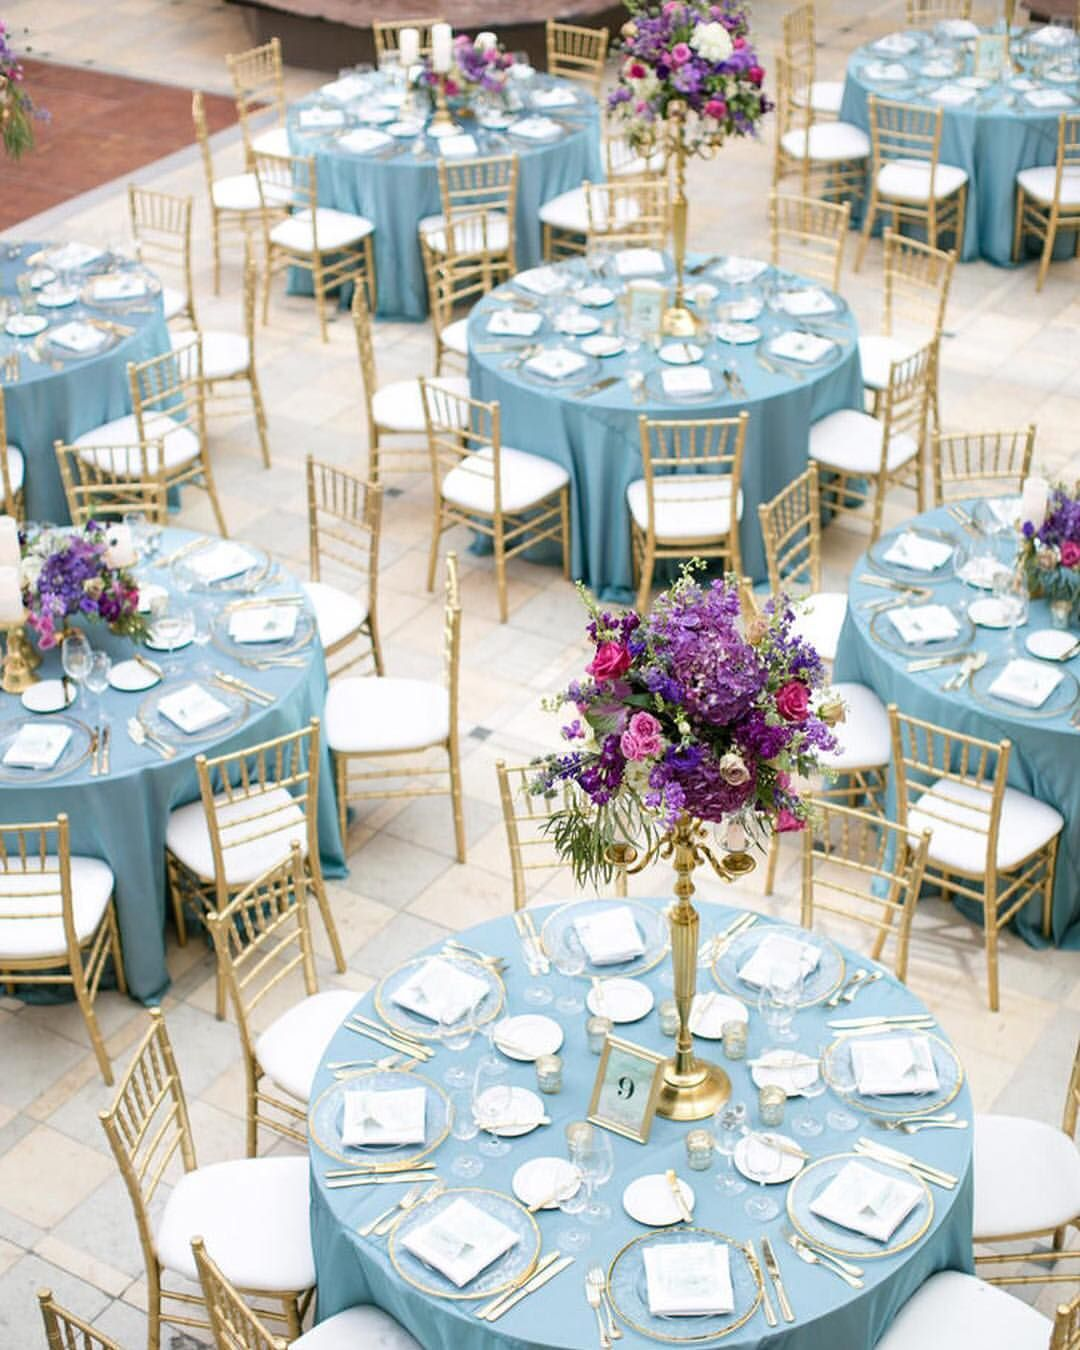 Simple wedding decoration ideas for reception   Likes  Comments  The Knot theknot on Instagram ucThese